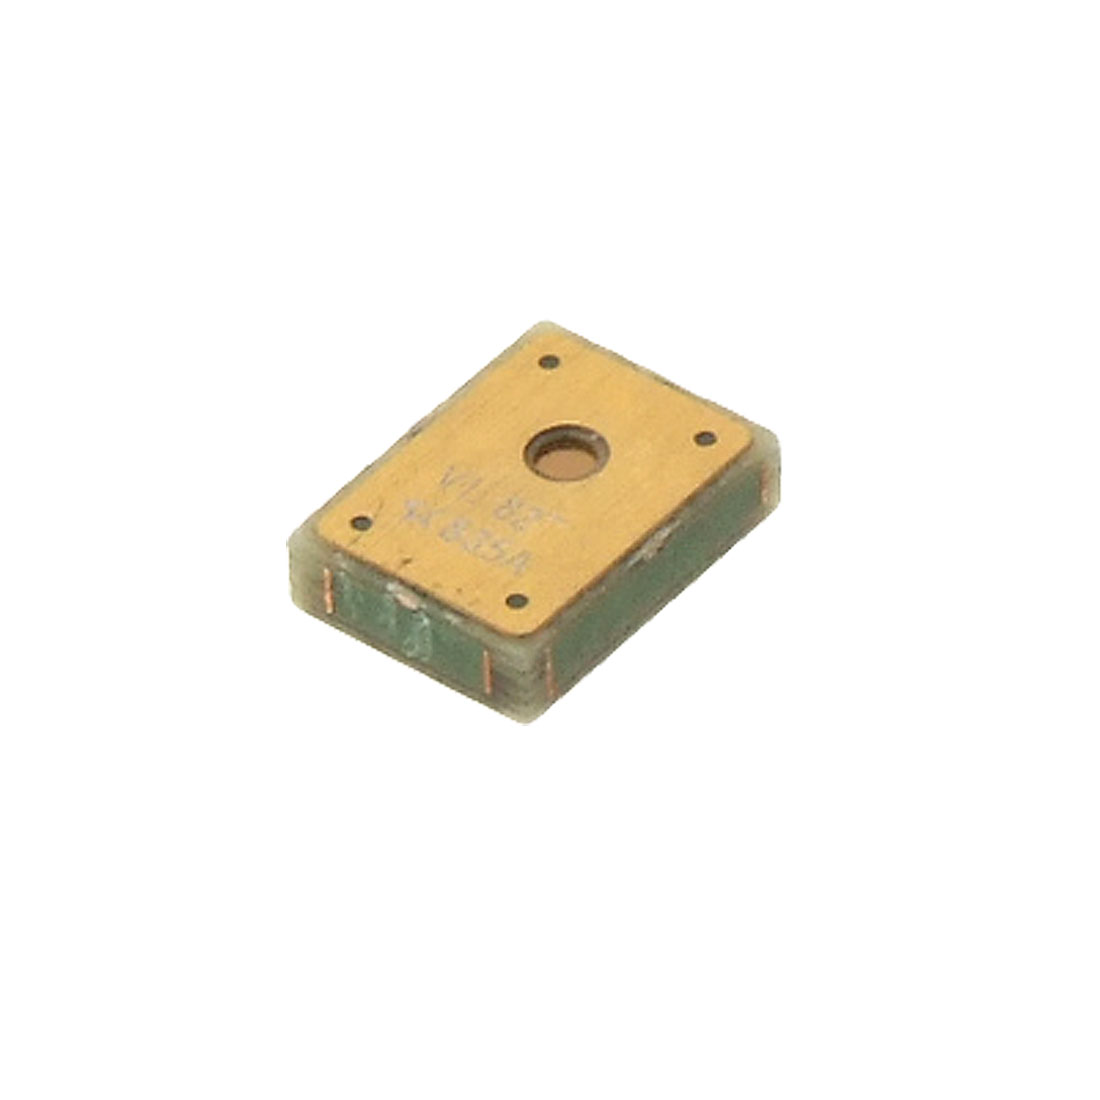 Replacement Internal Microphone Piece for Nokia 5610